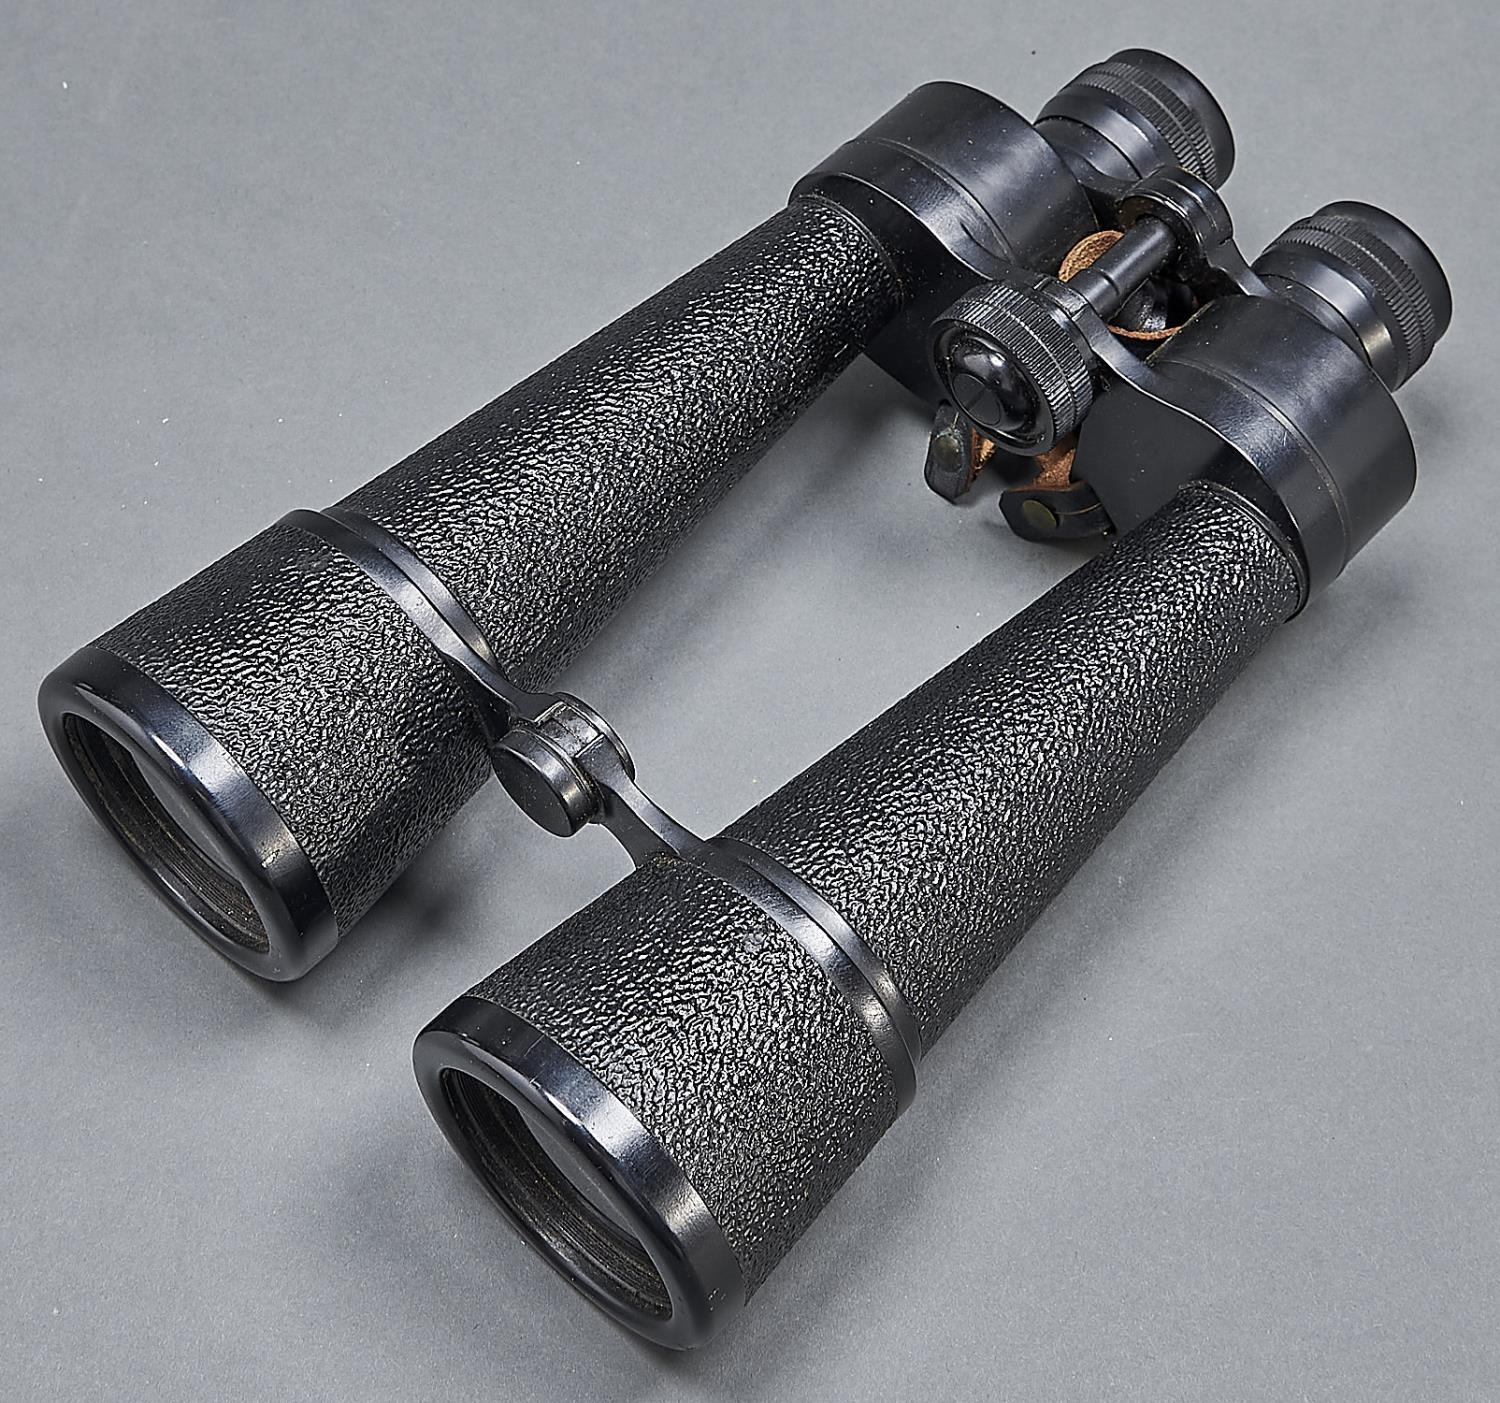 Binoculars. Barr & Stroud 15X, type CF46, No 114494 second quarter 20th c with printed leaflet